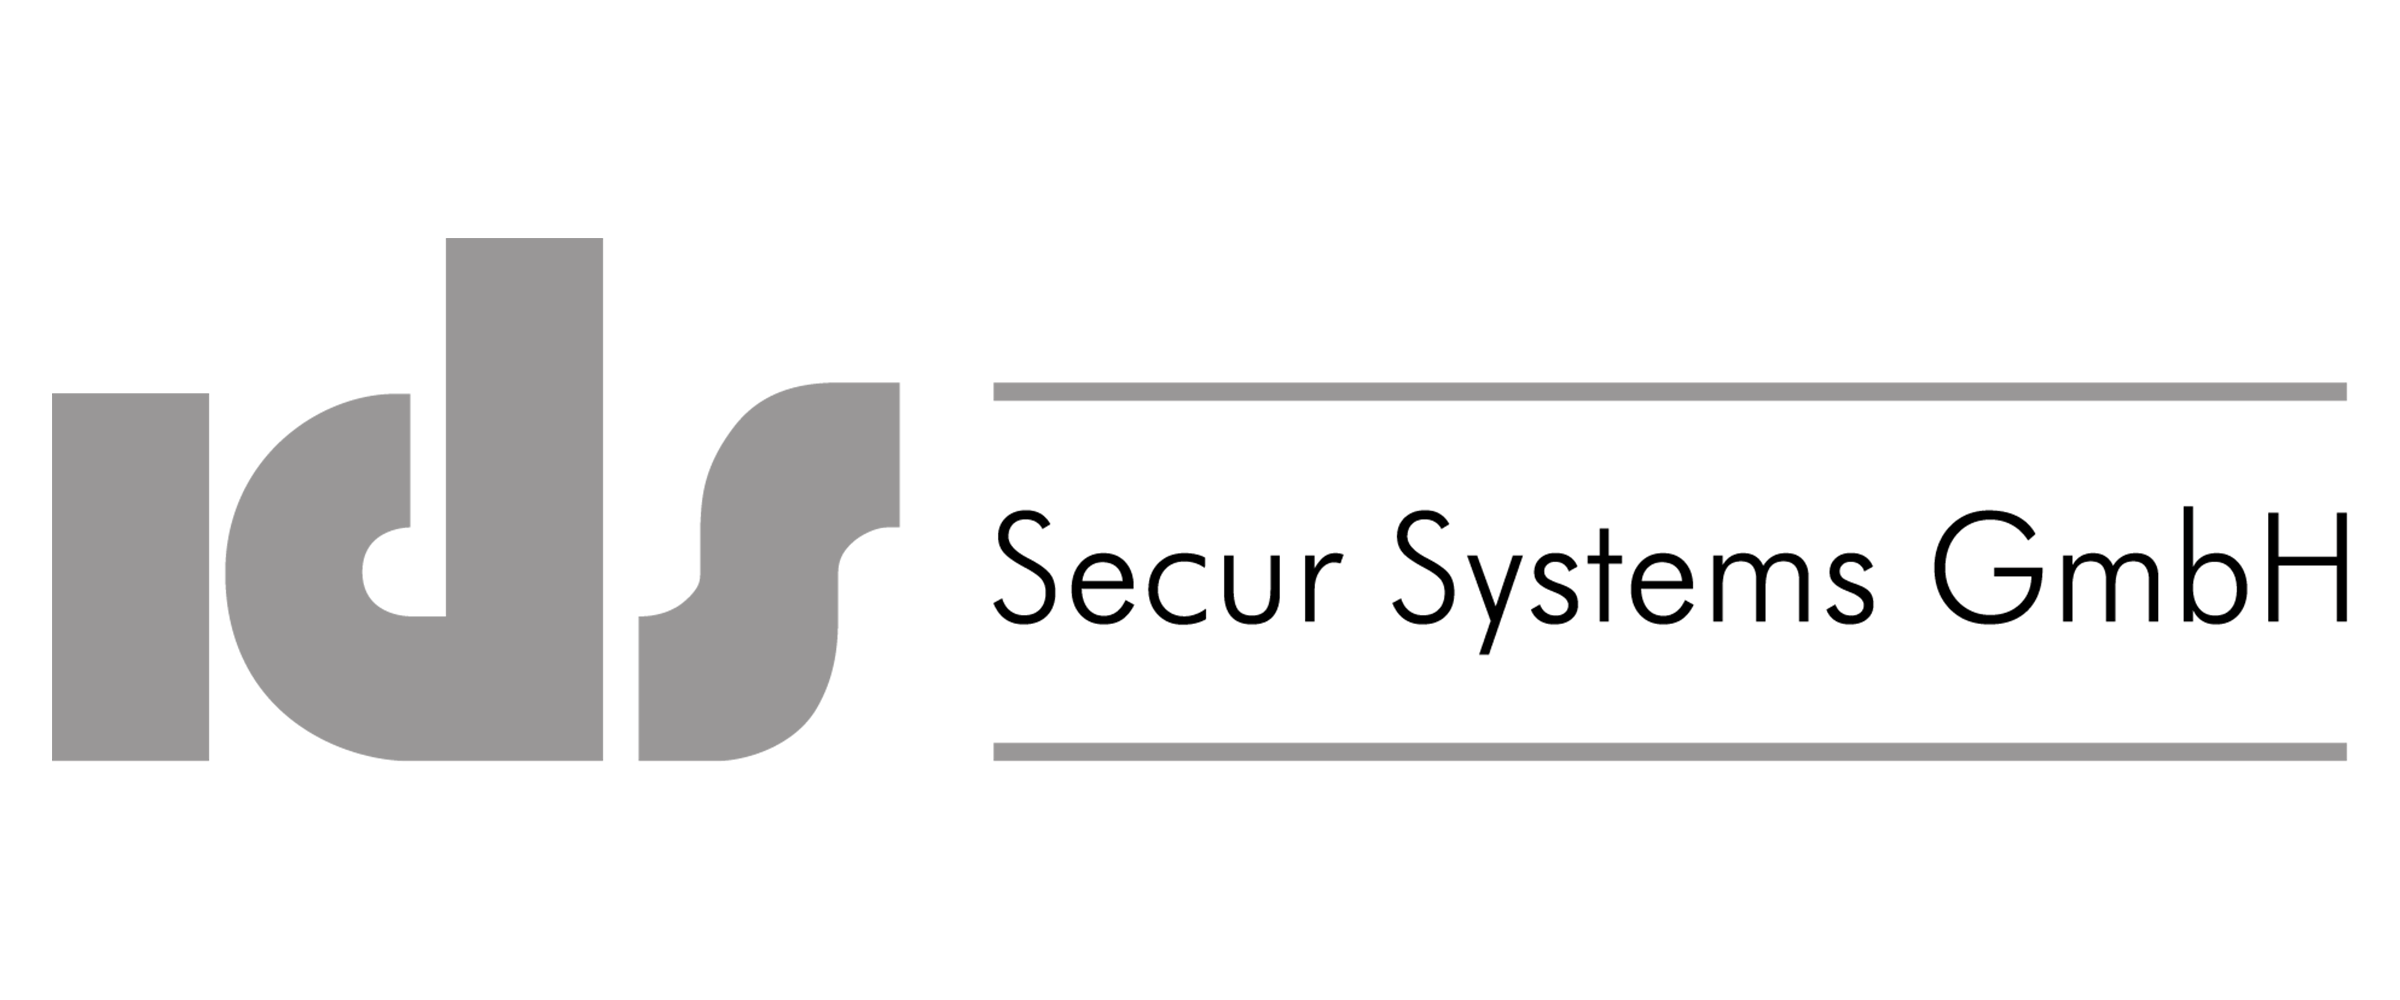 IDS Secur Systems